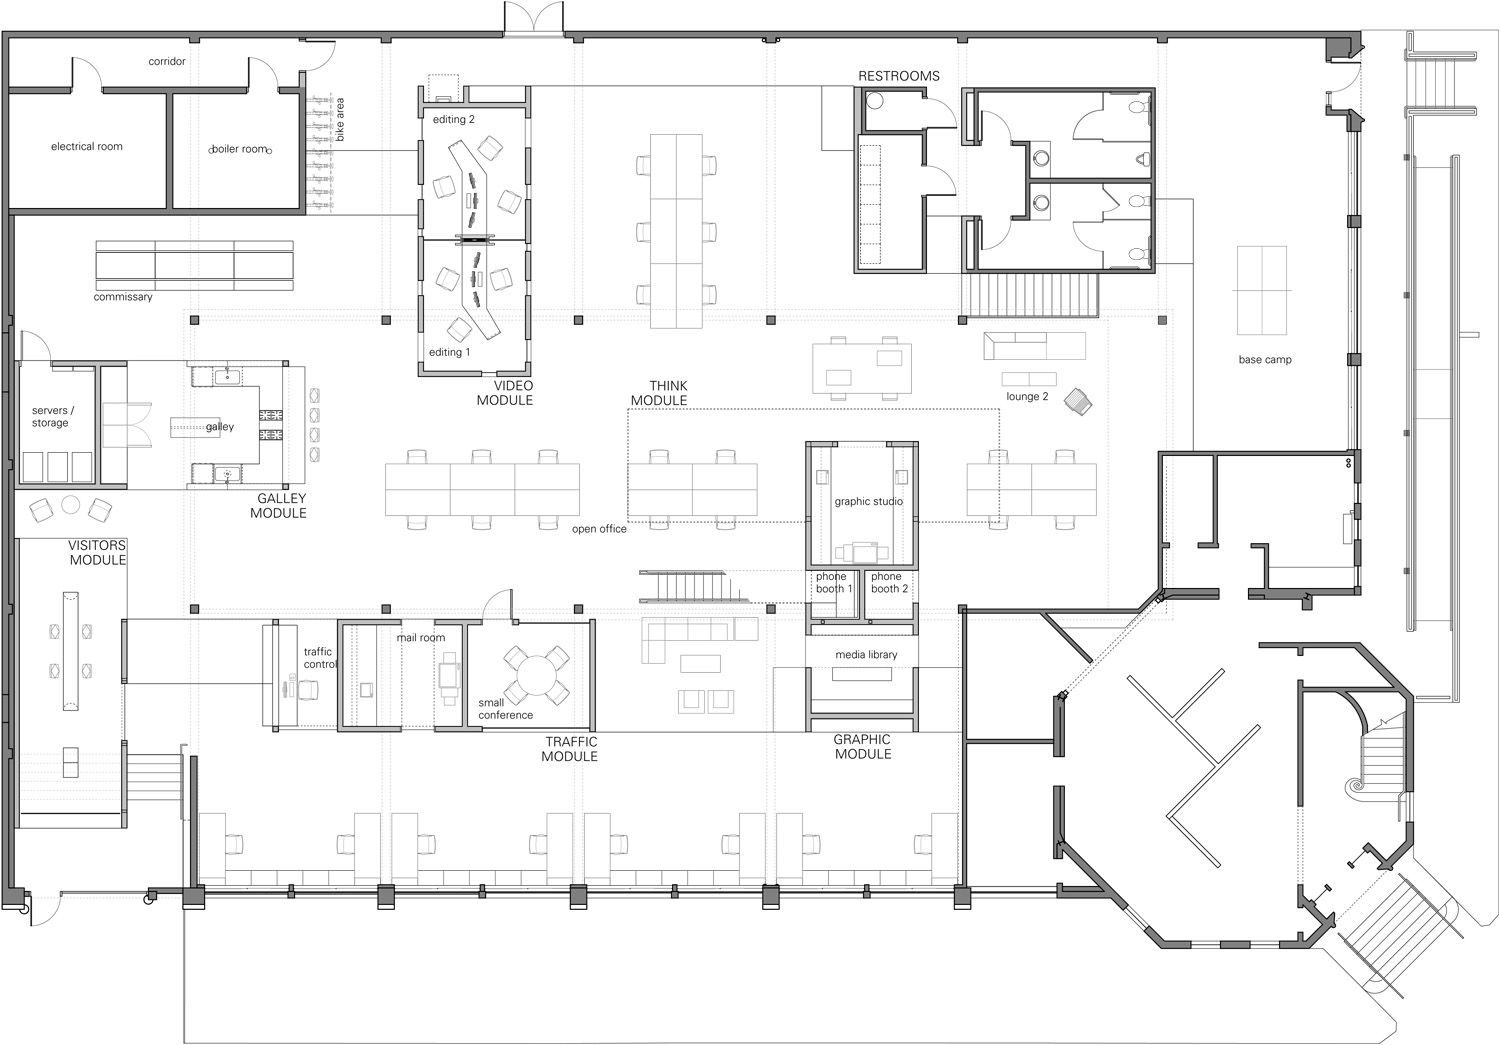 North skylab architecture office floor plan office for Office room plan